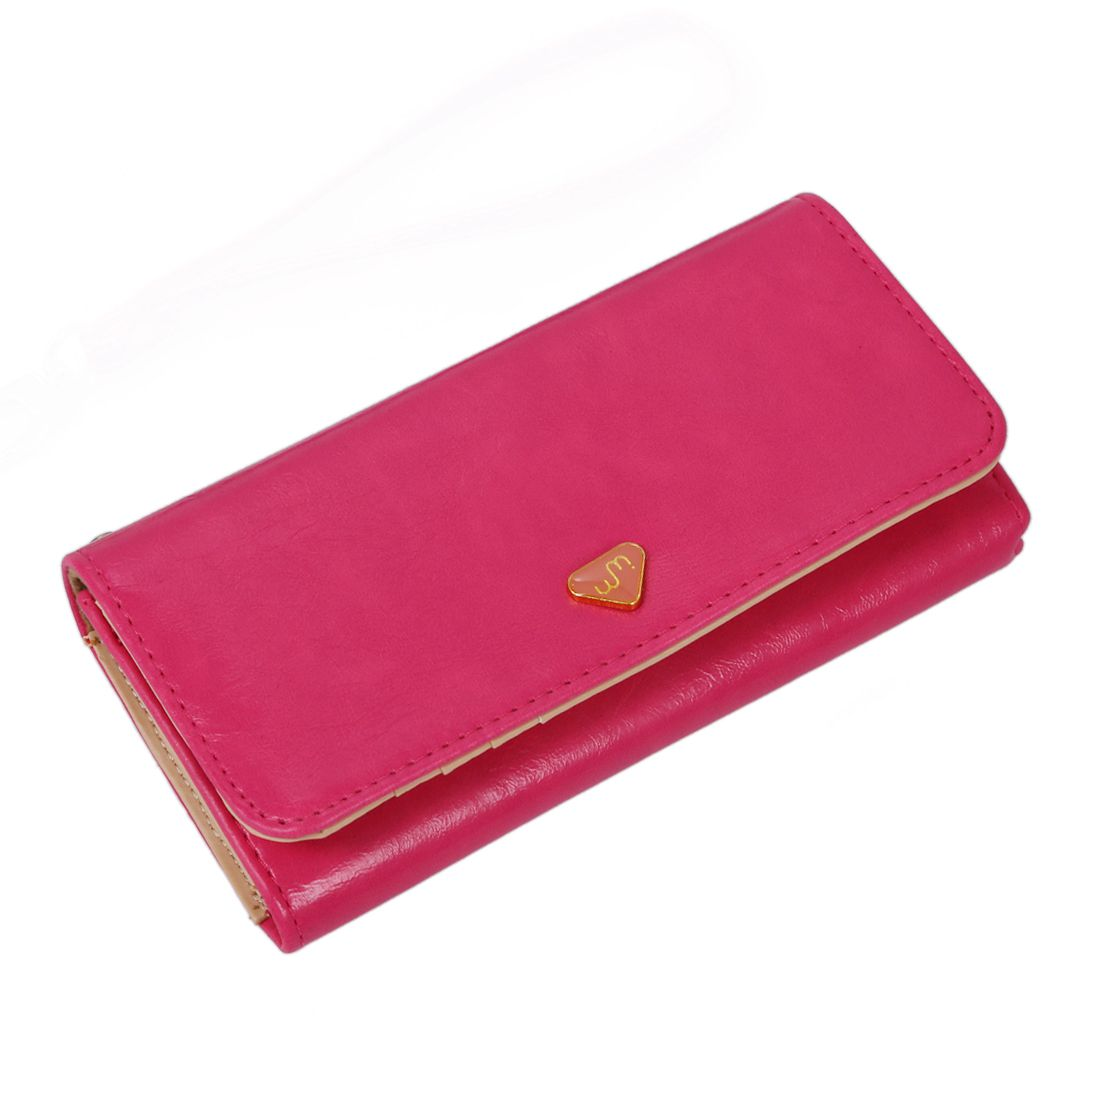 ASDS New Fashion Leather Women Wallet Travel Credit Card Package ID Storage Bag-rose red набор тарелок мелких 6 шт 25см форма сабина 0158 фарфор leander 655471